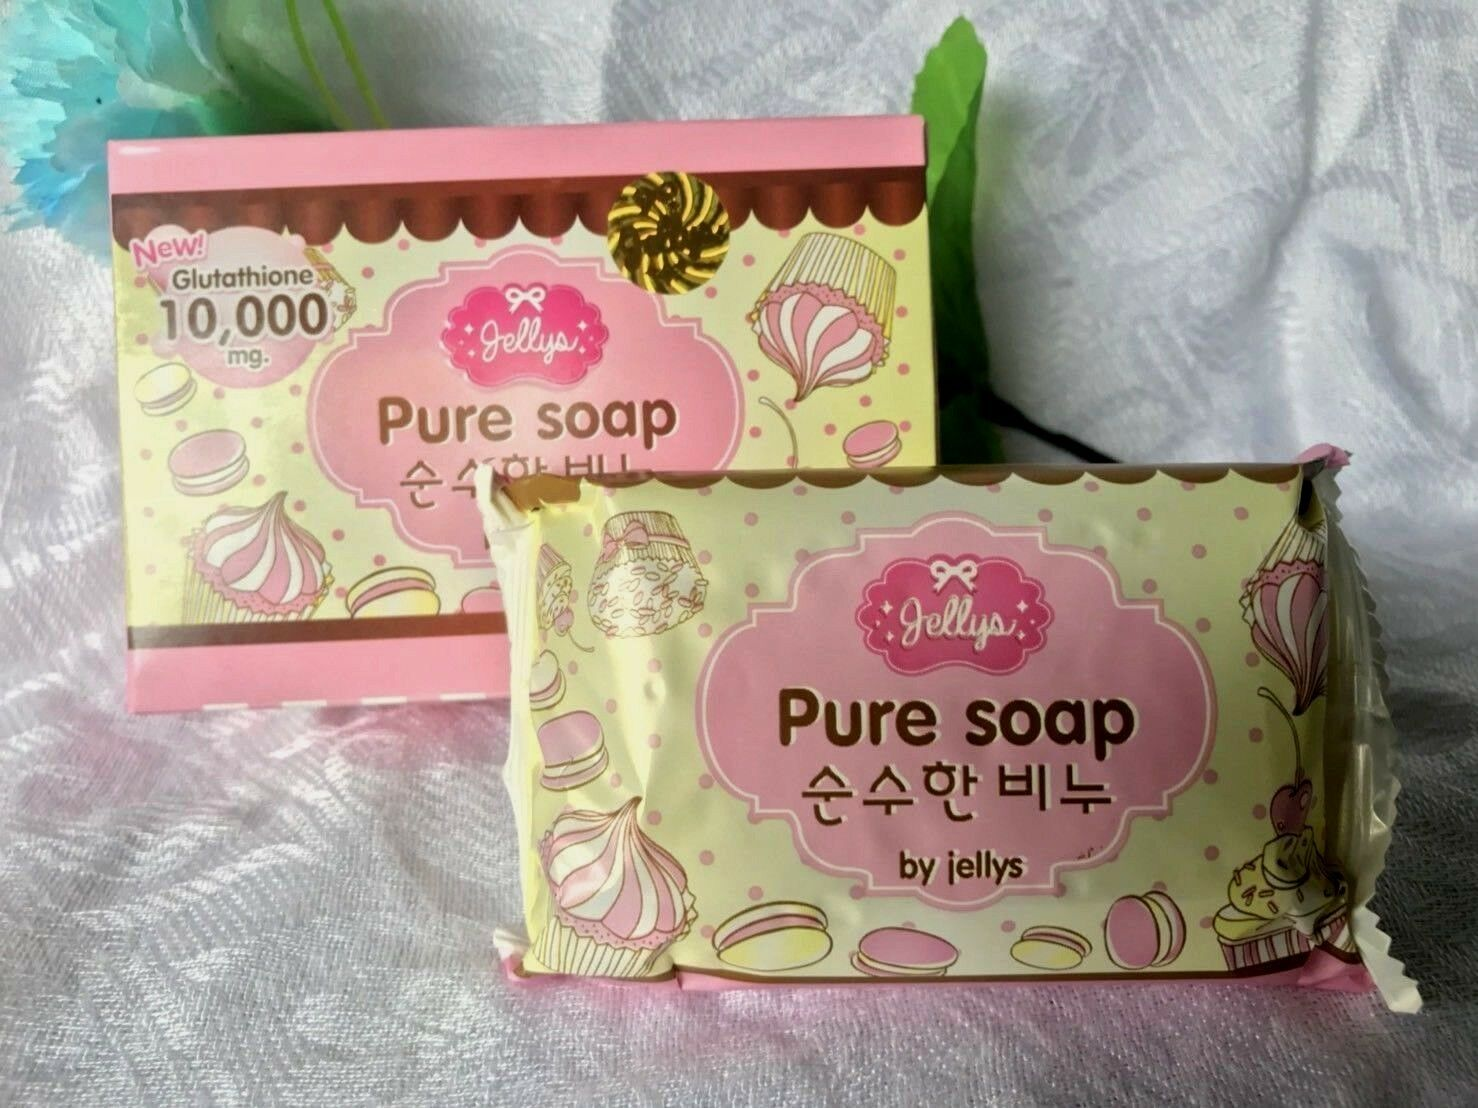 Pure Soap Bpom By Jellys Body Original Jelly Pur Skin Whitening Healthy Reduce Dark Spot Freckles Ebay 1478x1108